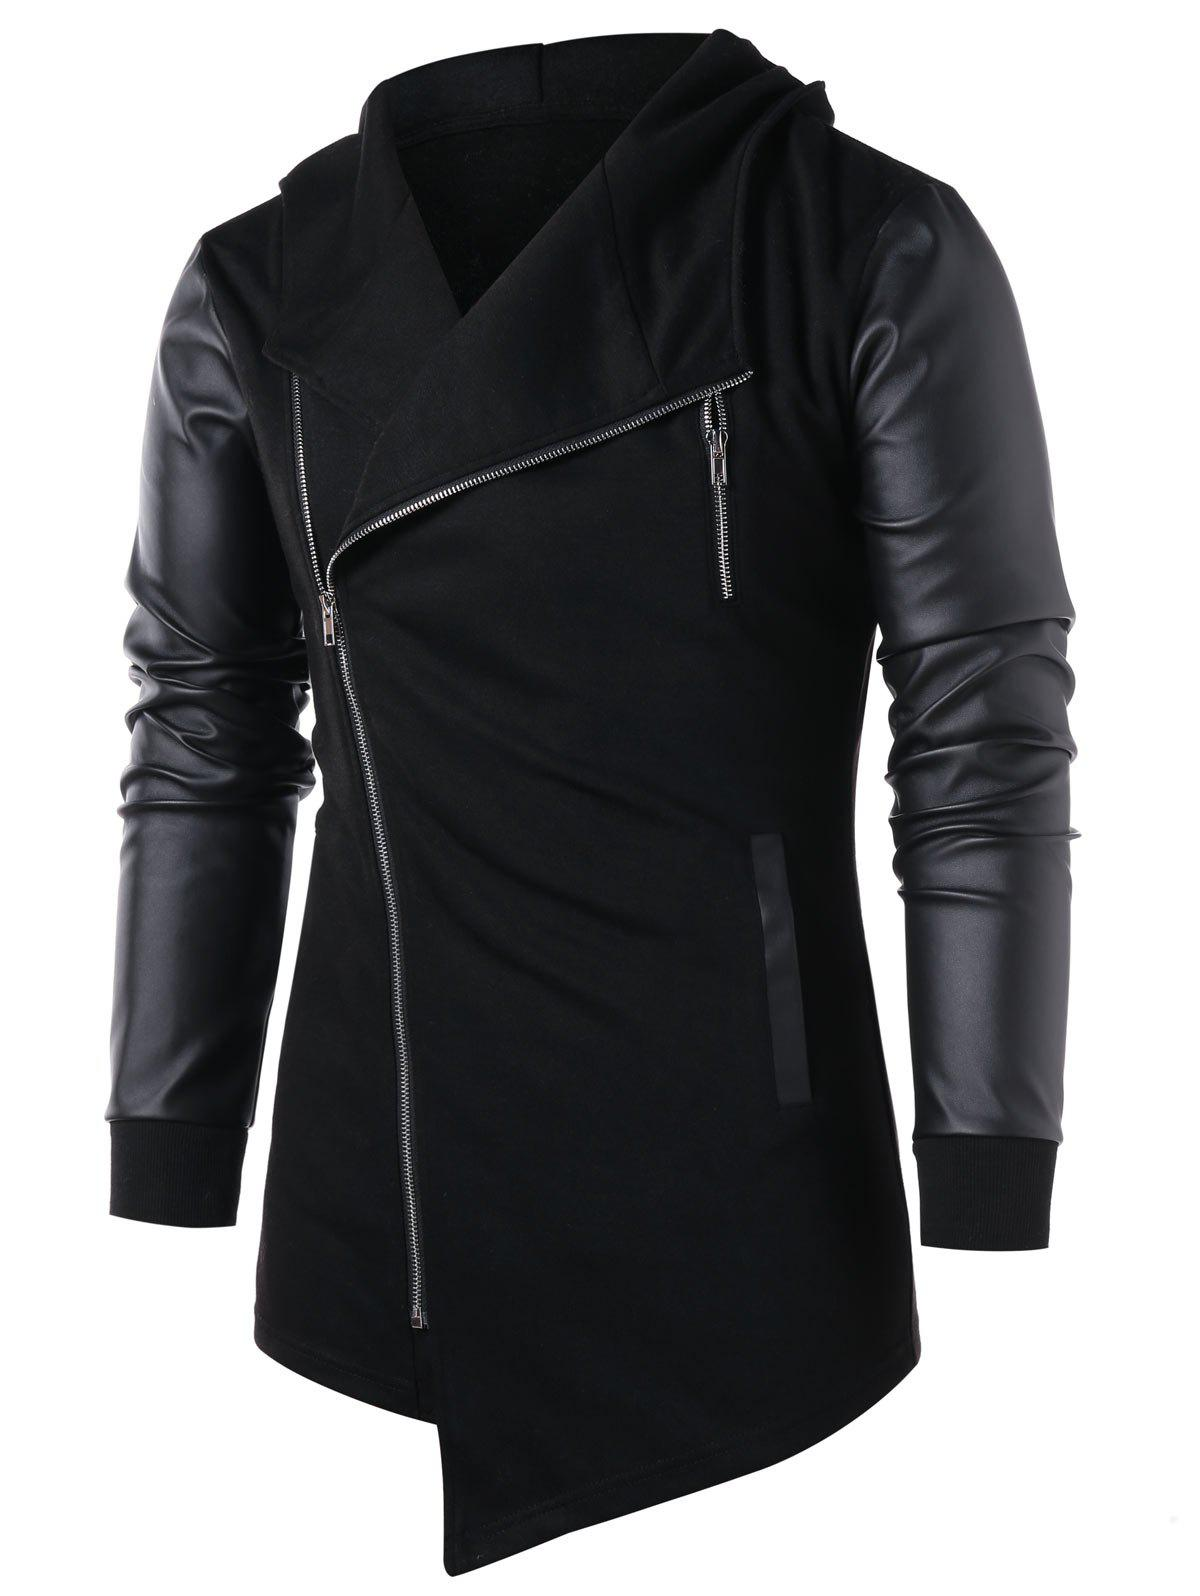 Asymmetric Panel Zip Embellished Coat - BLACK L